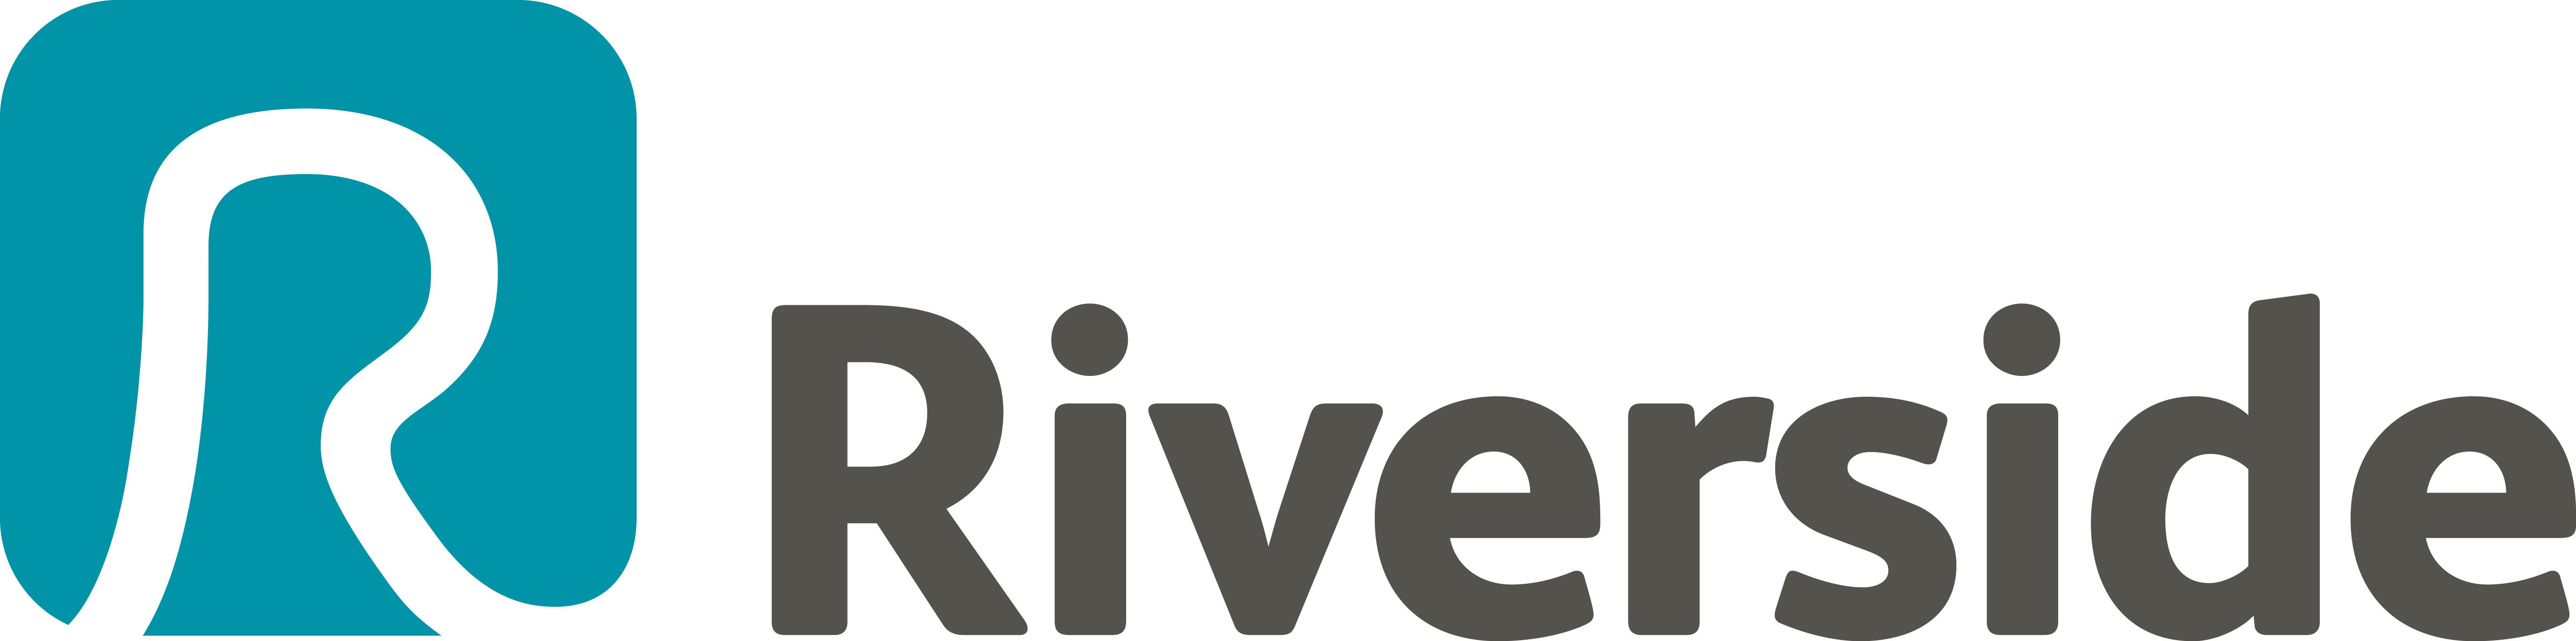 Riverside Housing logo